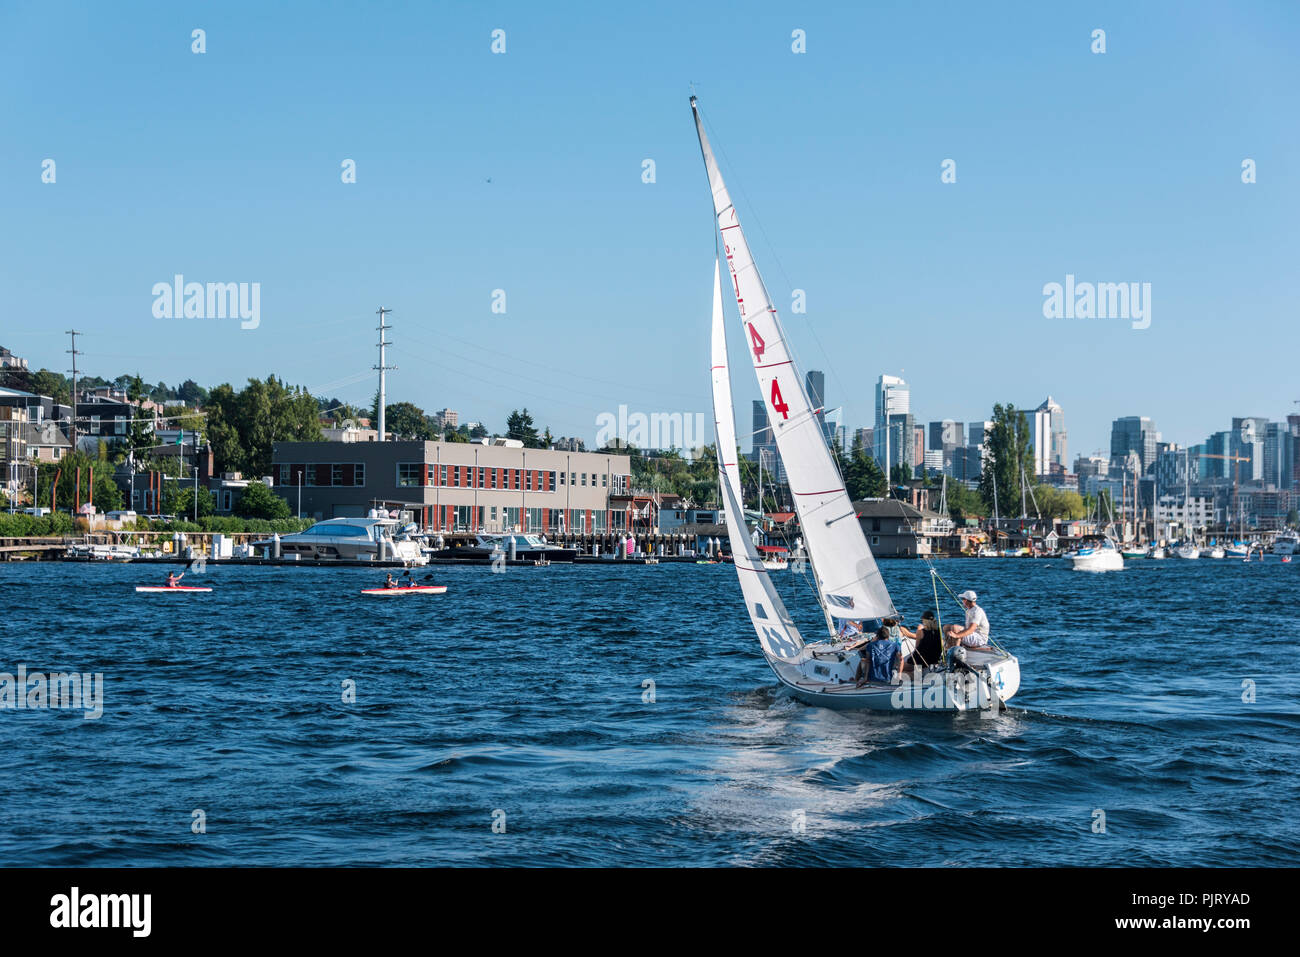 Sailboat on Lake Union in Summer - Stock Image